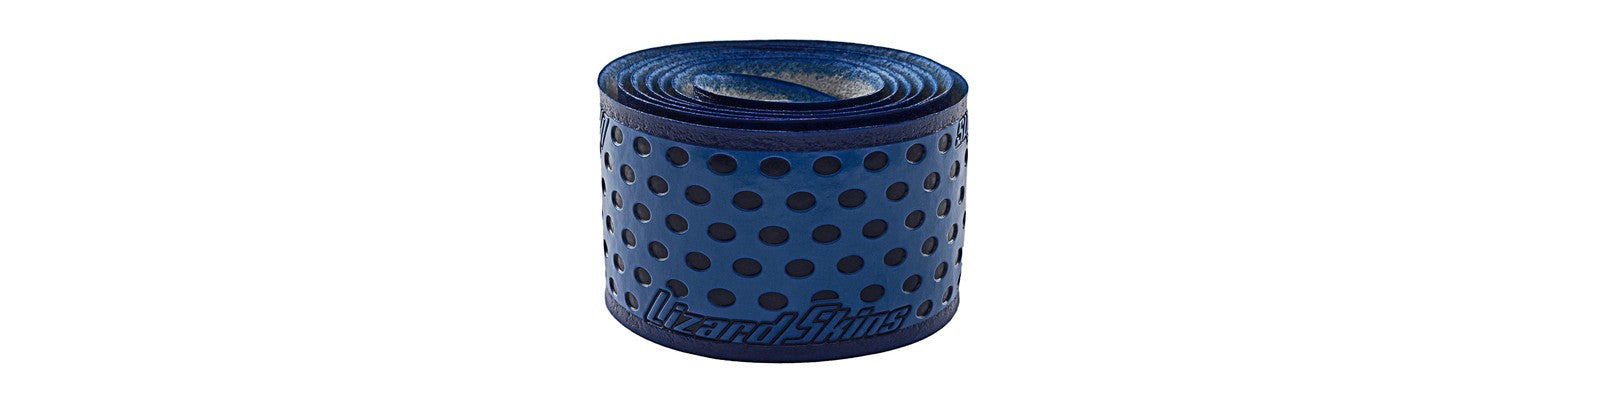 Lizard Skin Bat Wrap - Blue